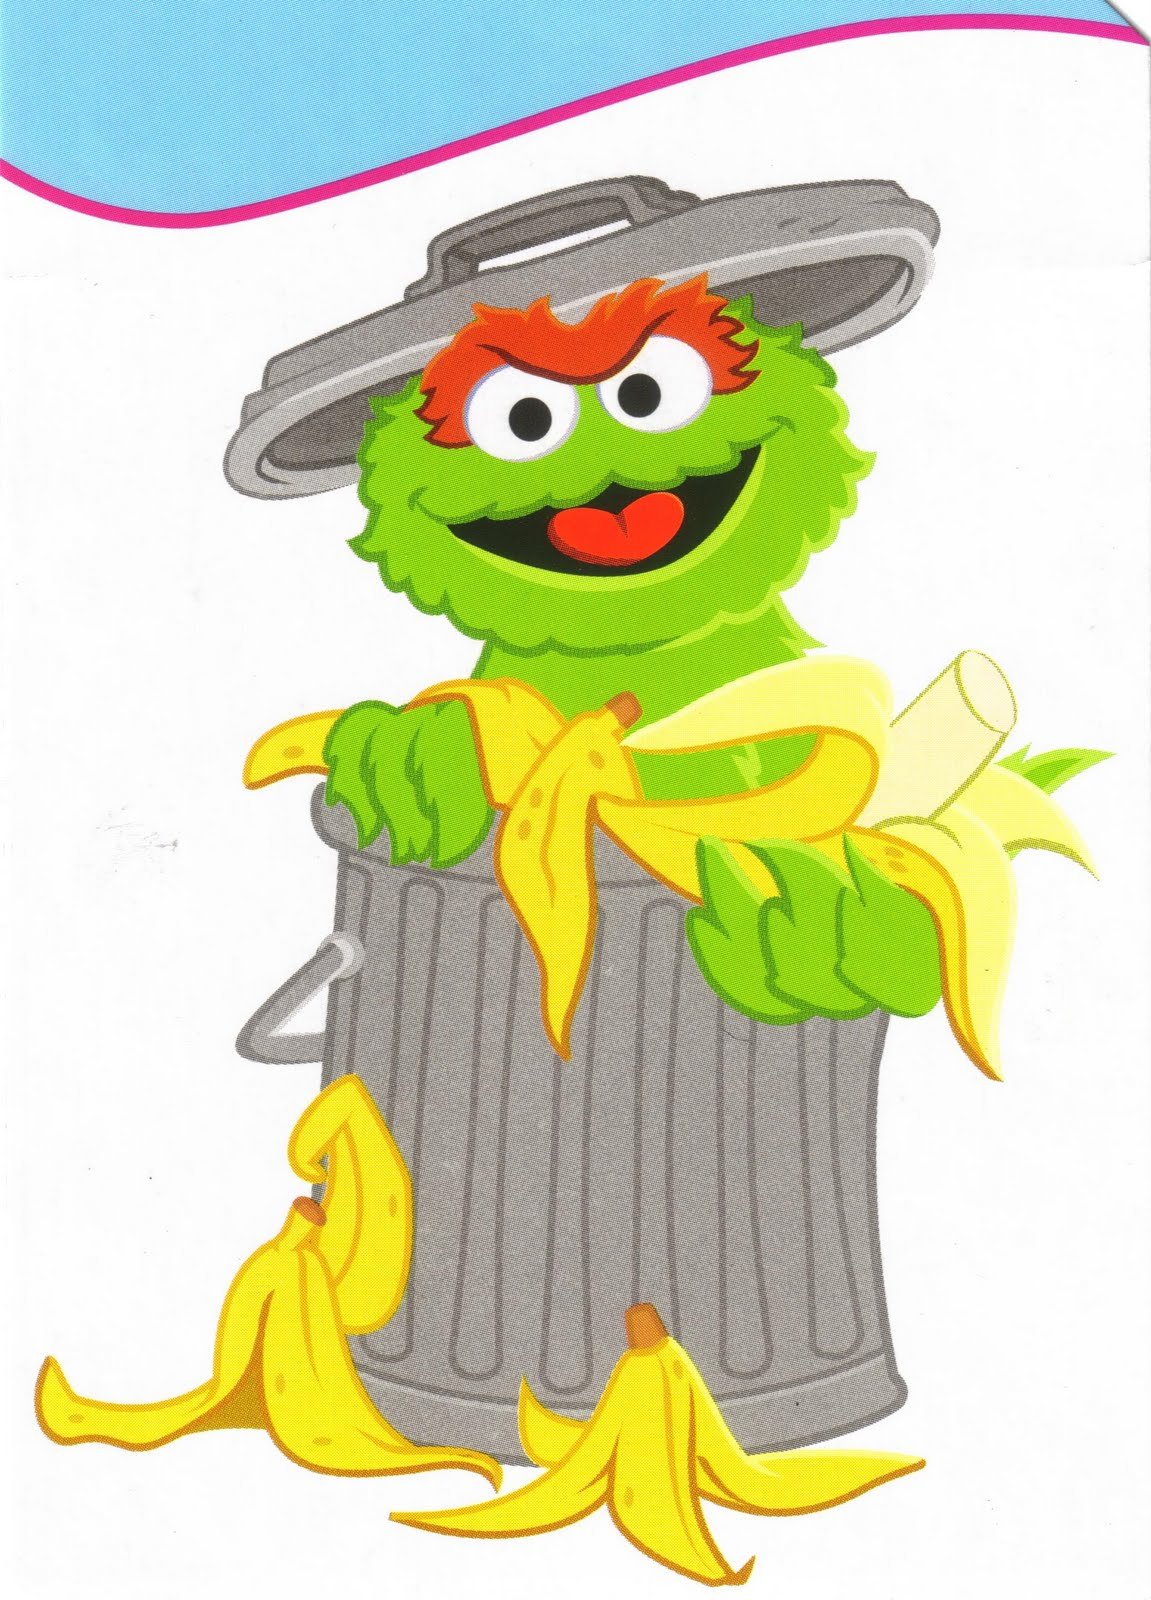 Oscar The Grouch clipart head The Grouch So can Composting